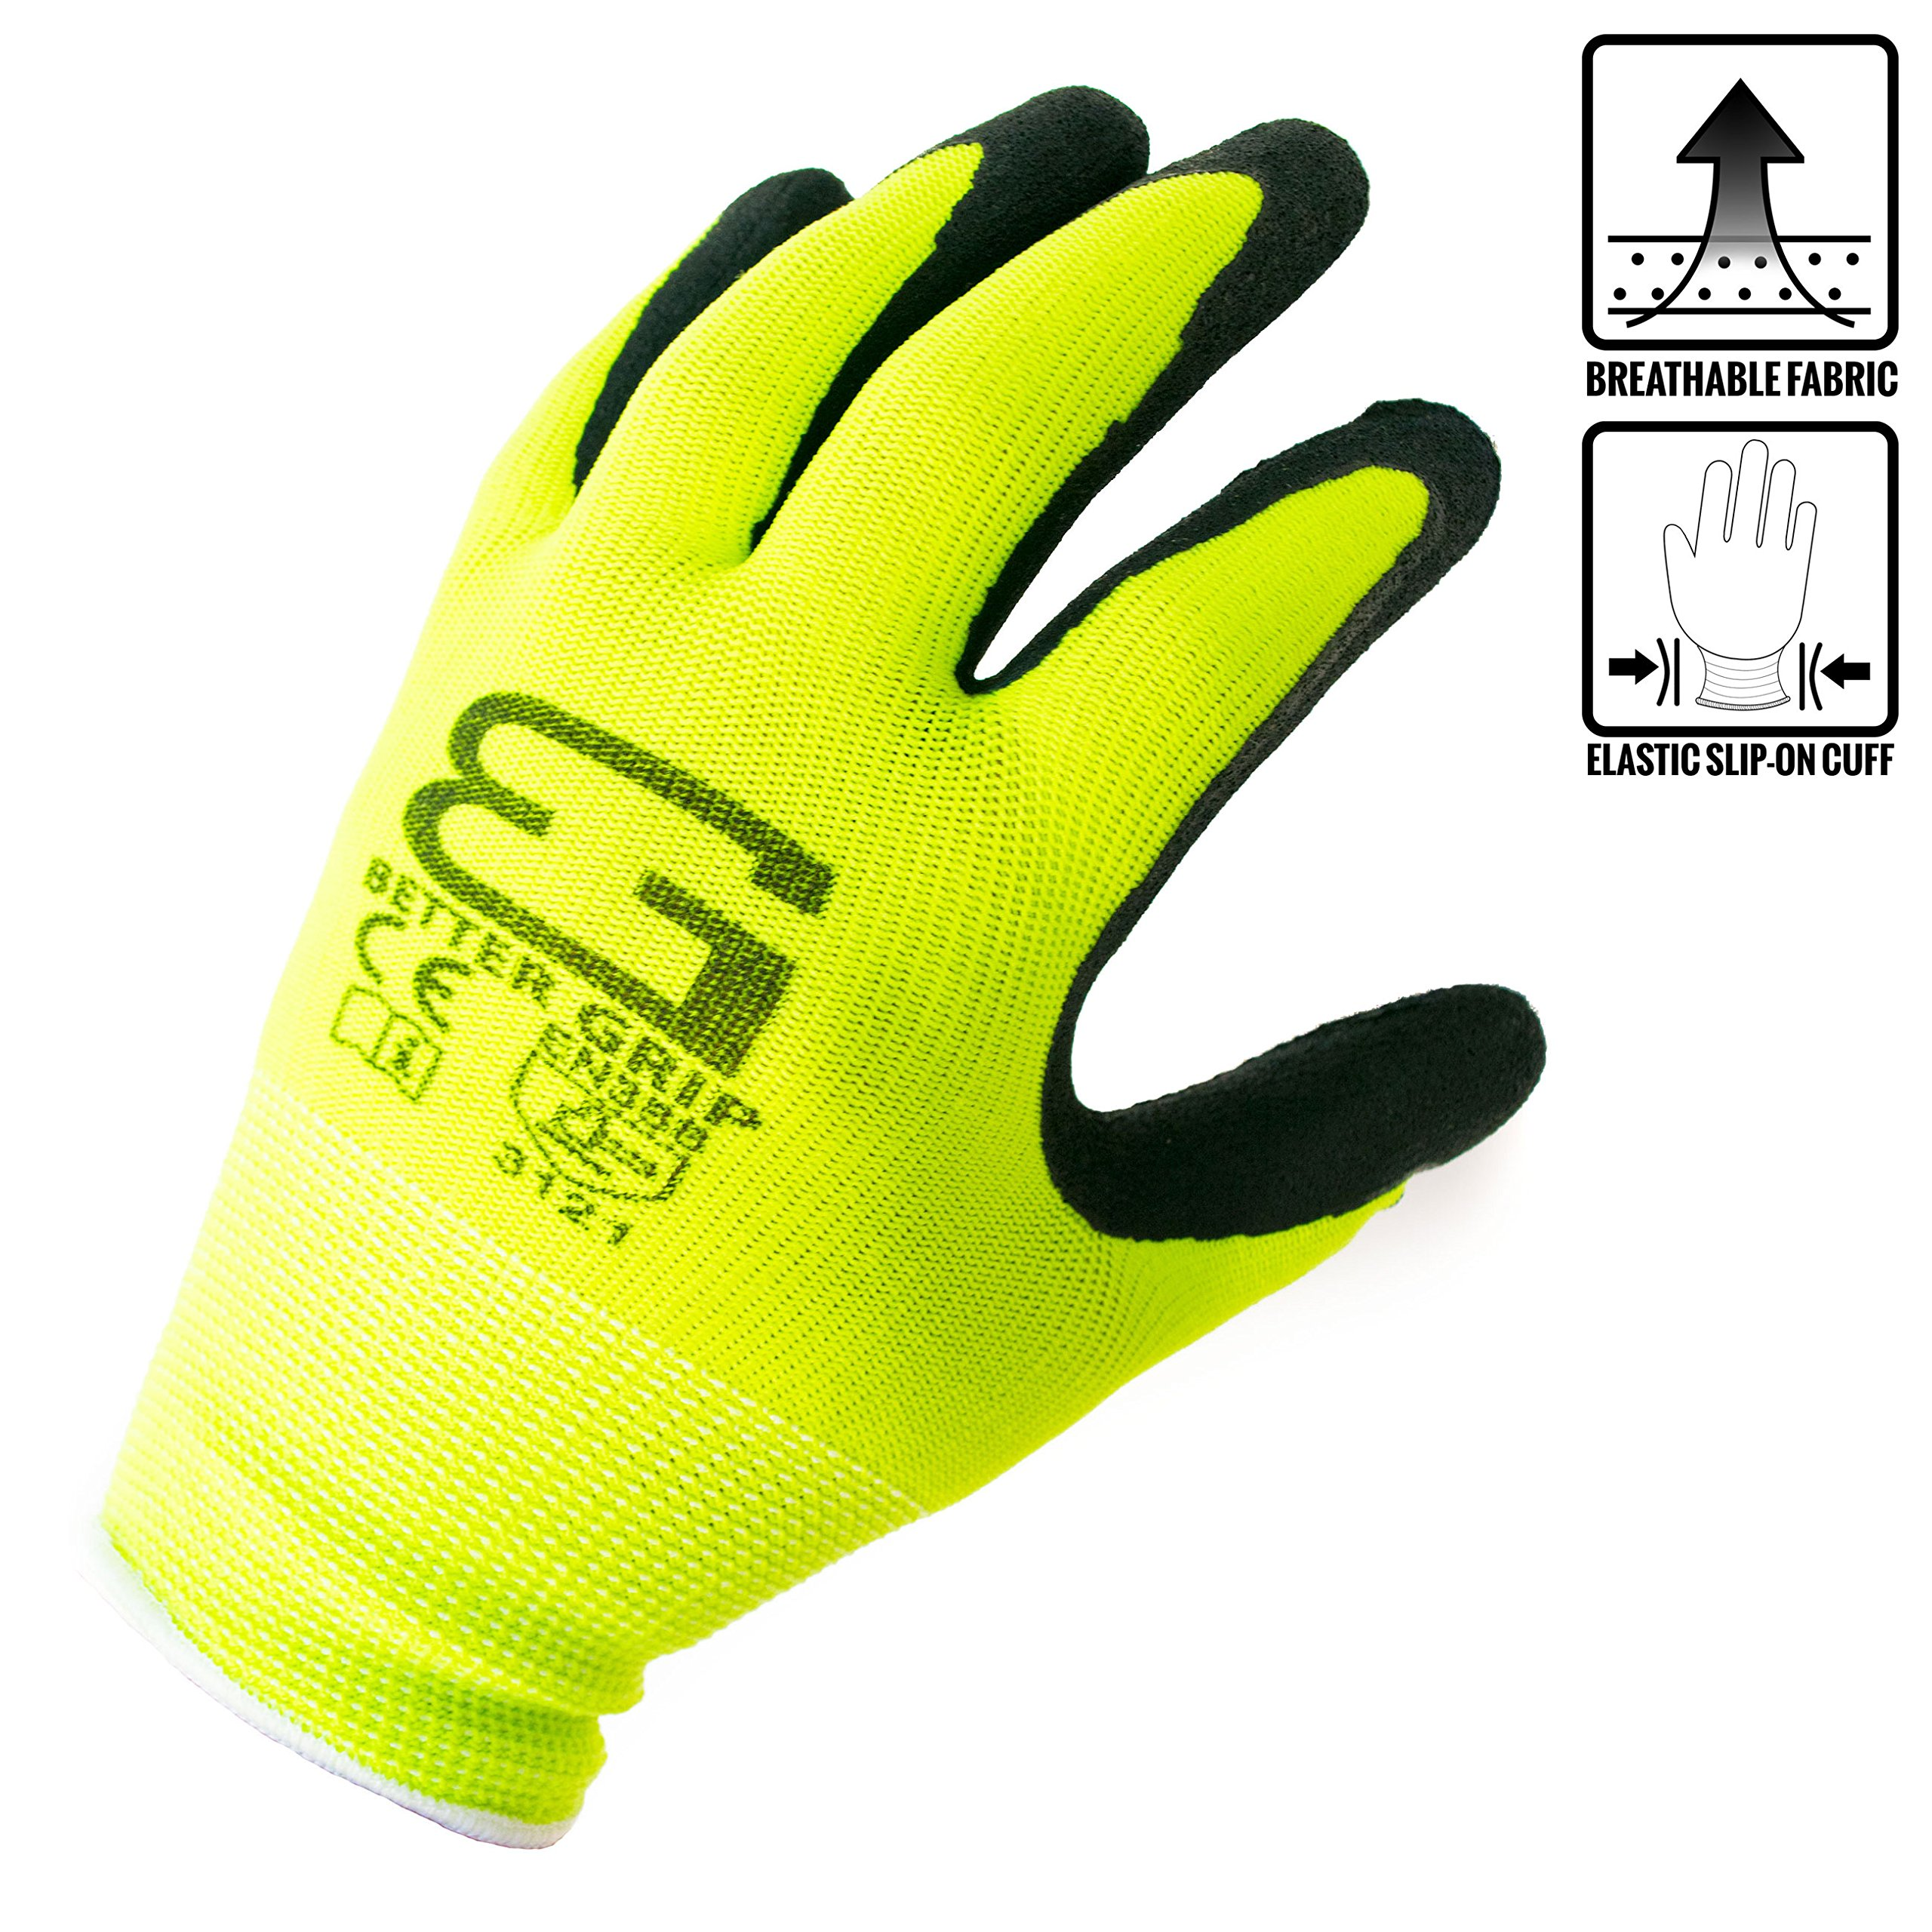 (Box Deal) BGS-LM-8M-CS, Better Grip Nylon Sandy Latex Coated Work Gloves, 144 Pairs/CS (Medium, Hi-Vis Lime) by Better Grip